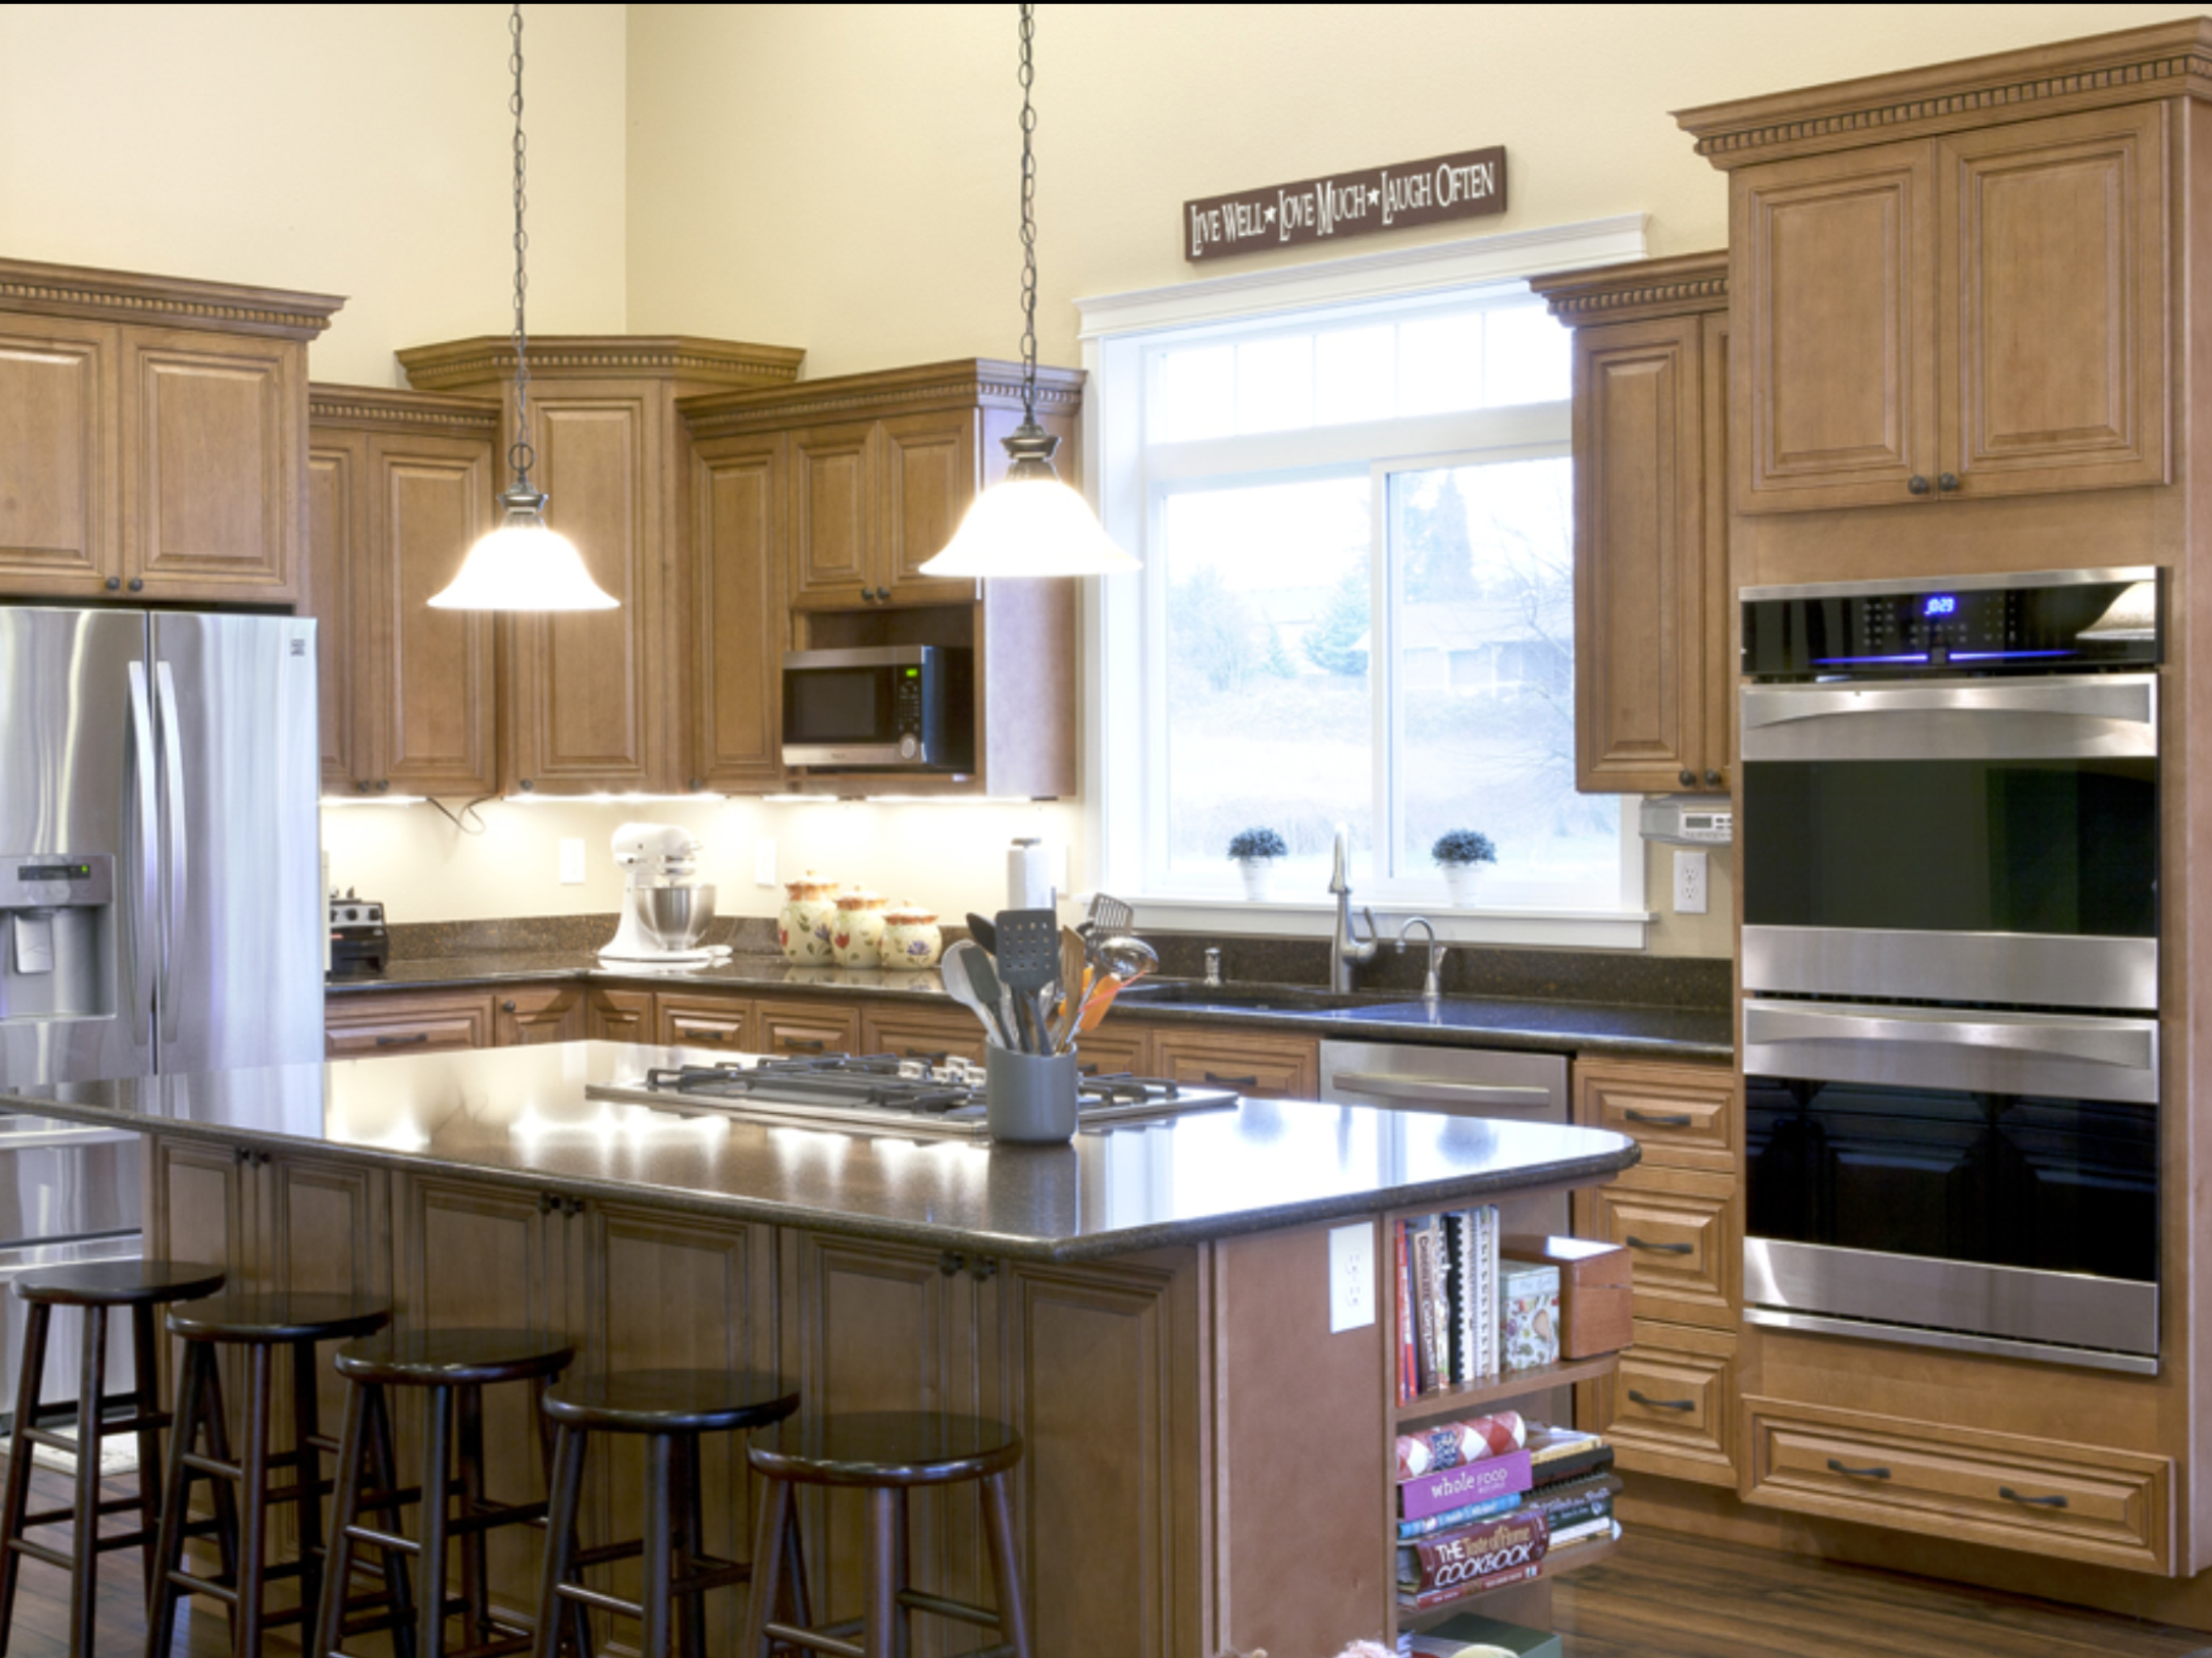 Pin by abc kitchens on Cinnamon Maple Cabinets | Kitchen ...